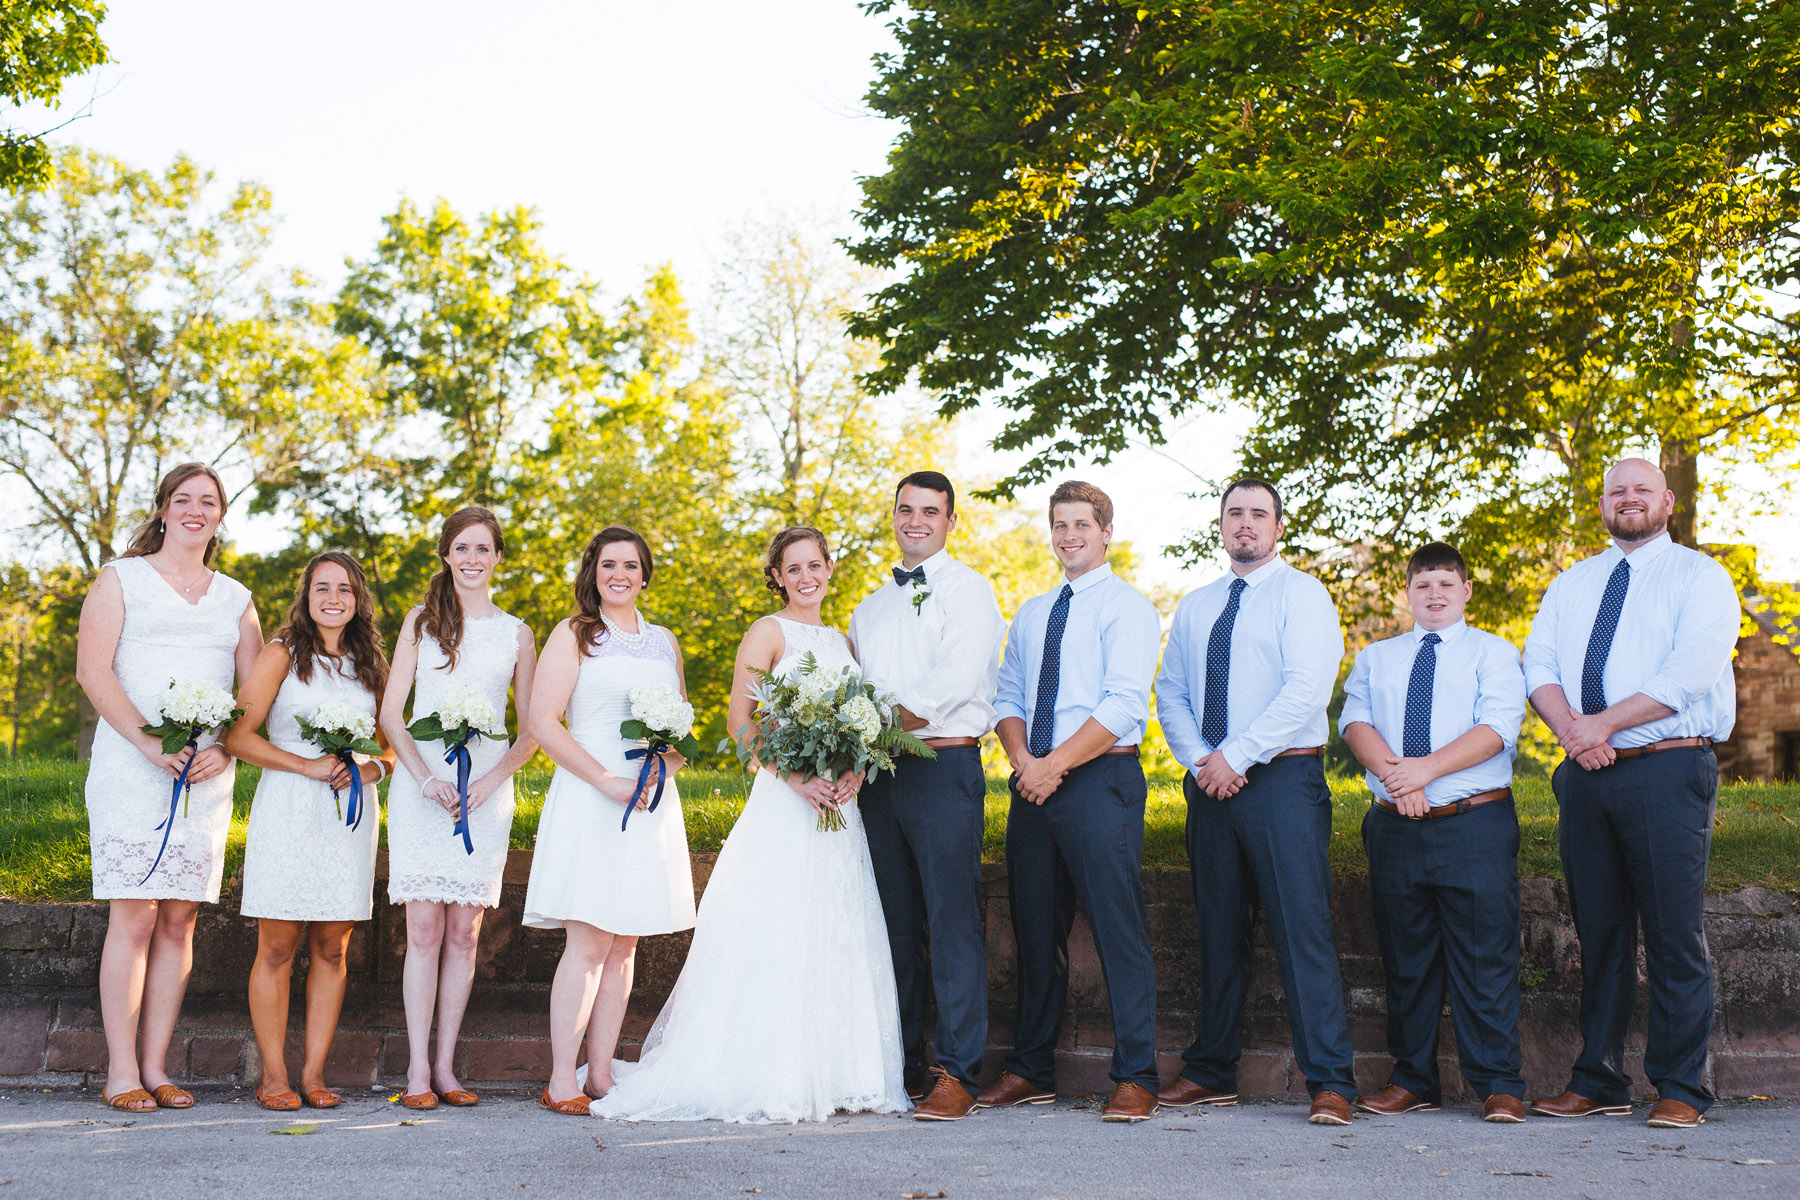 Janelle & Guy Wedding Blog 36